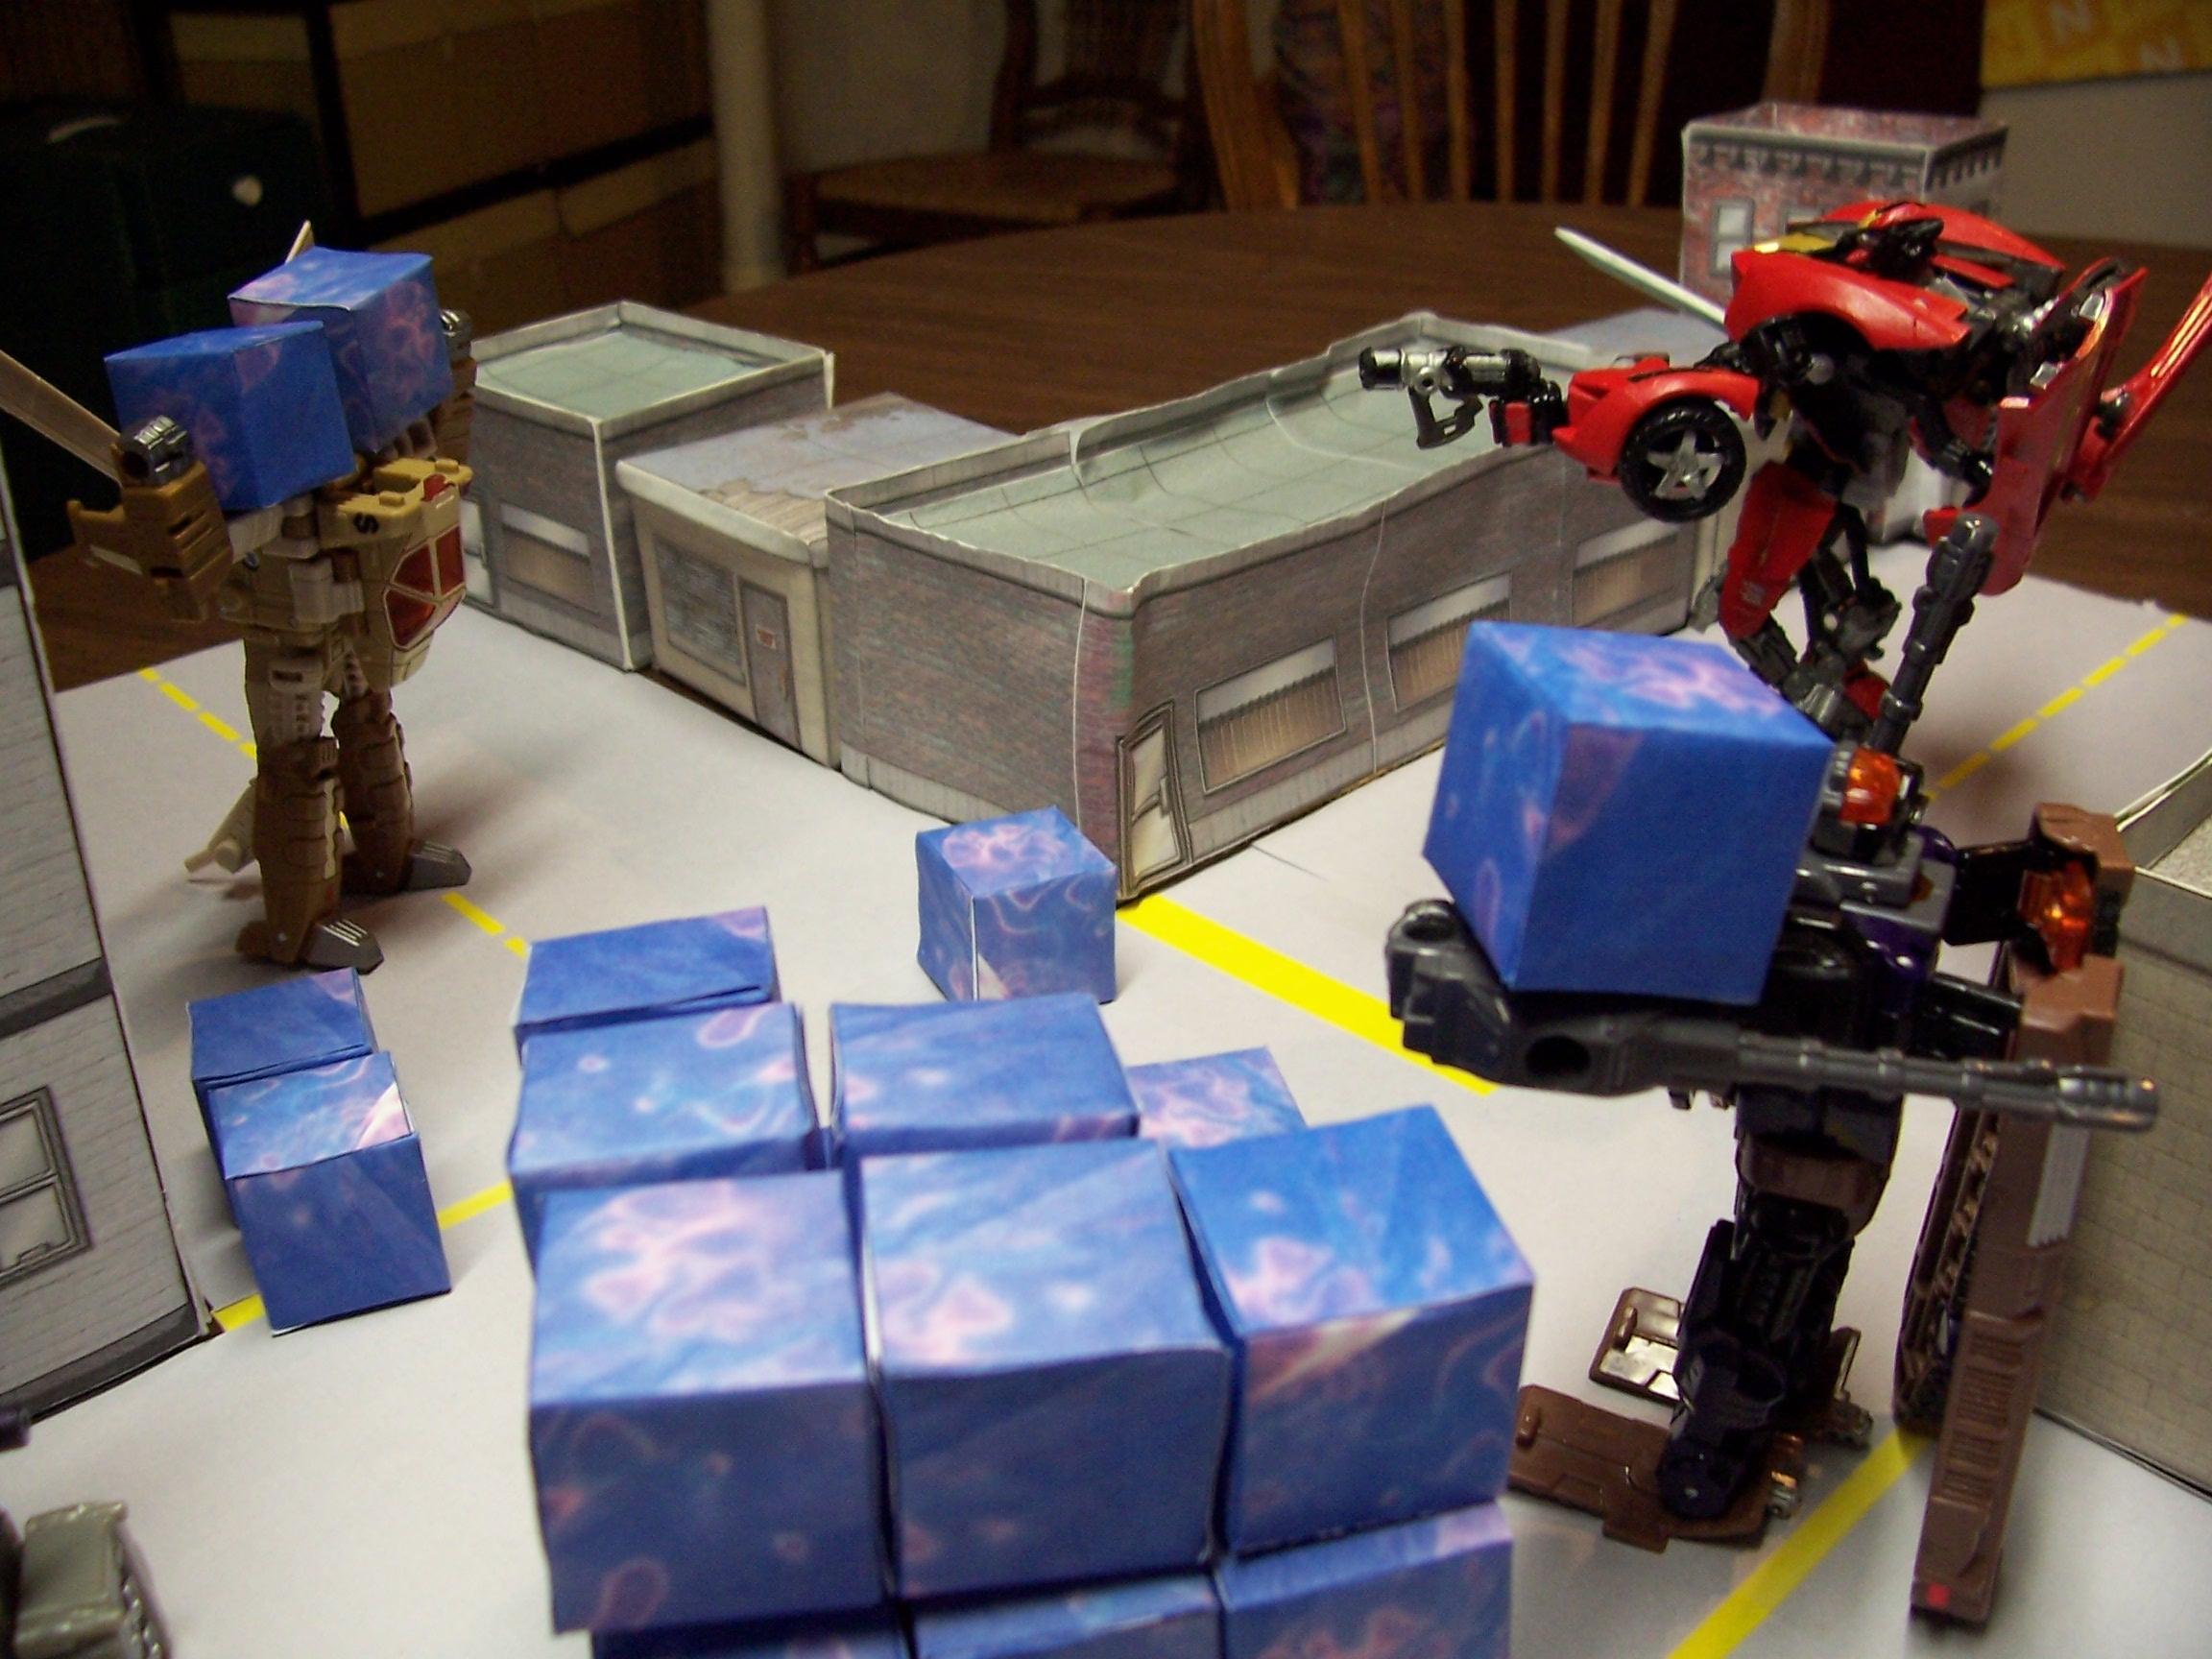 Scratch Builds: - Paper Craft Energon Cubes   TFW2005 - The 2005 Boards